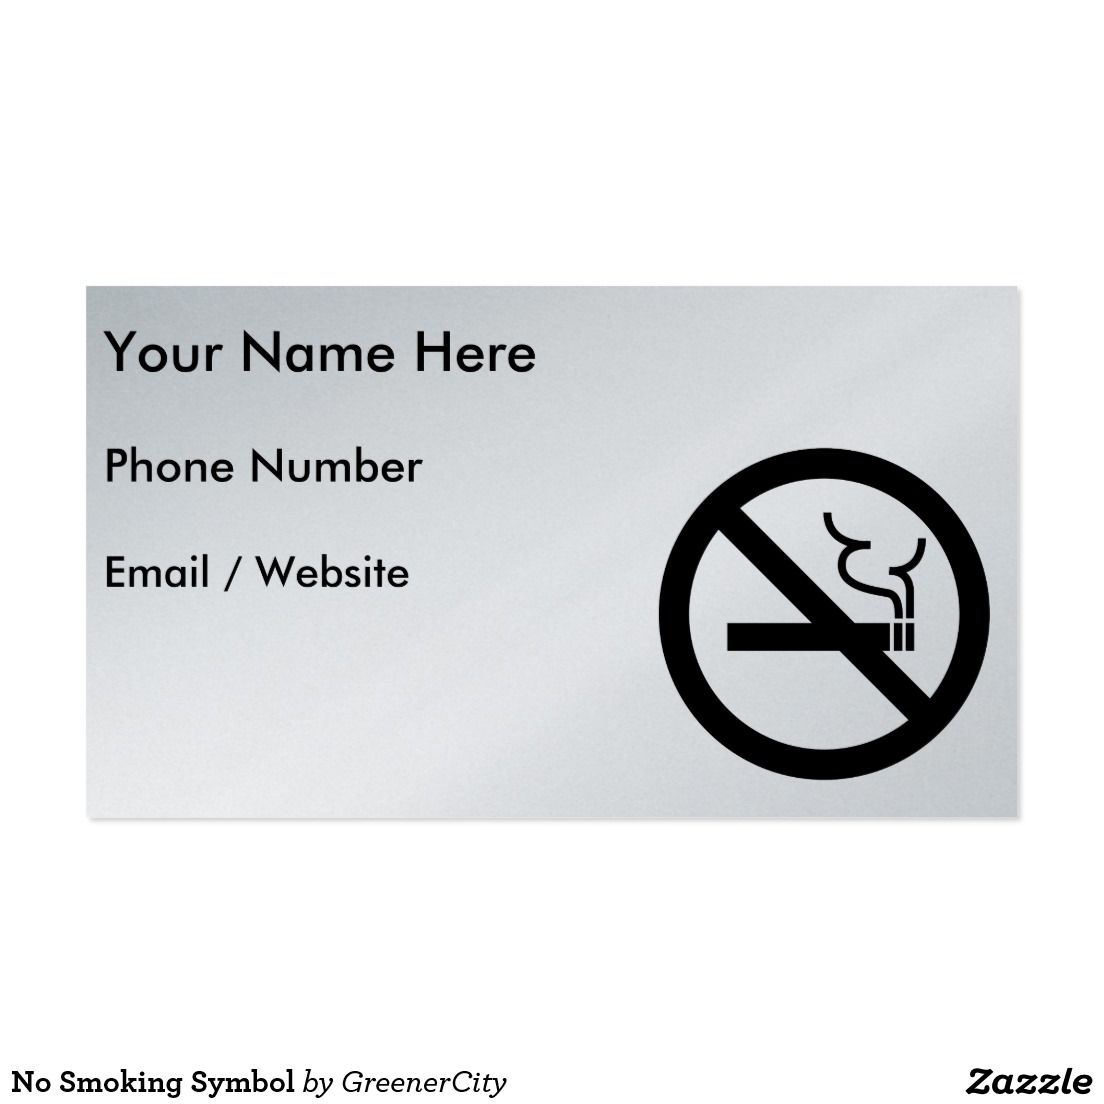 No Smoking Symbol Business Card | Business cards, Symbols and Business